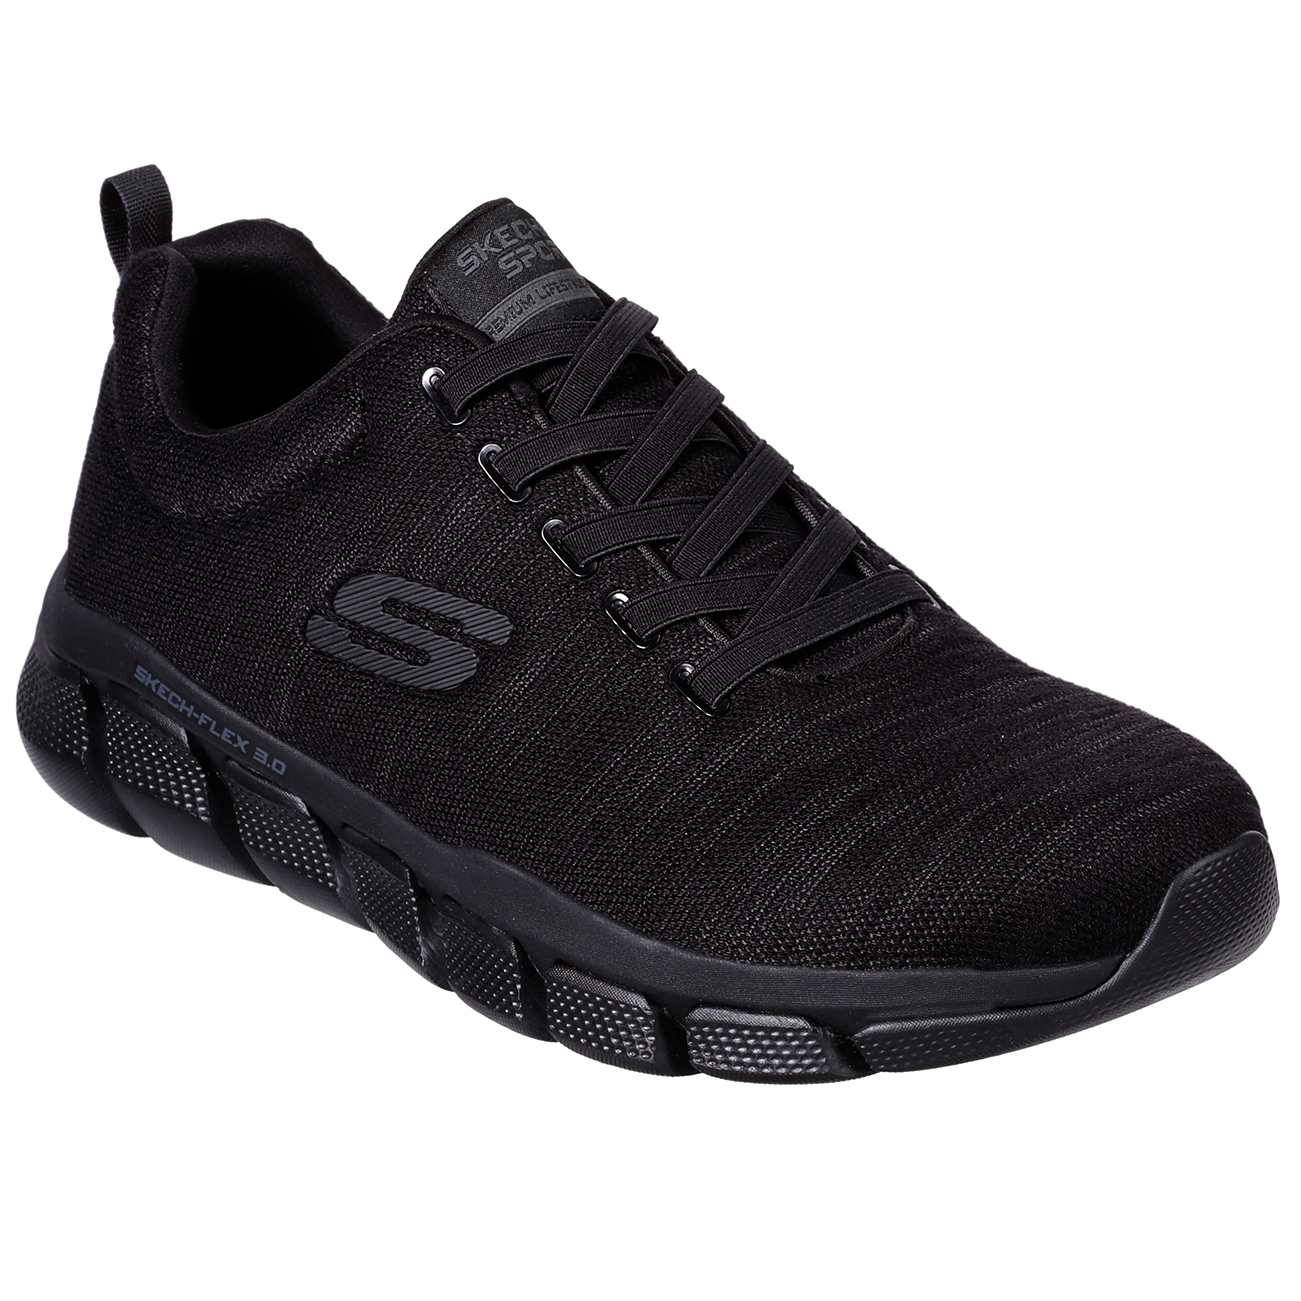 Skechers Skech Flex 3.0